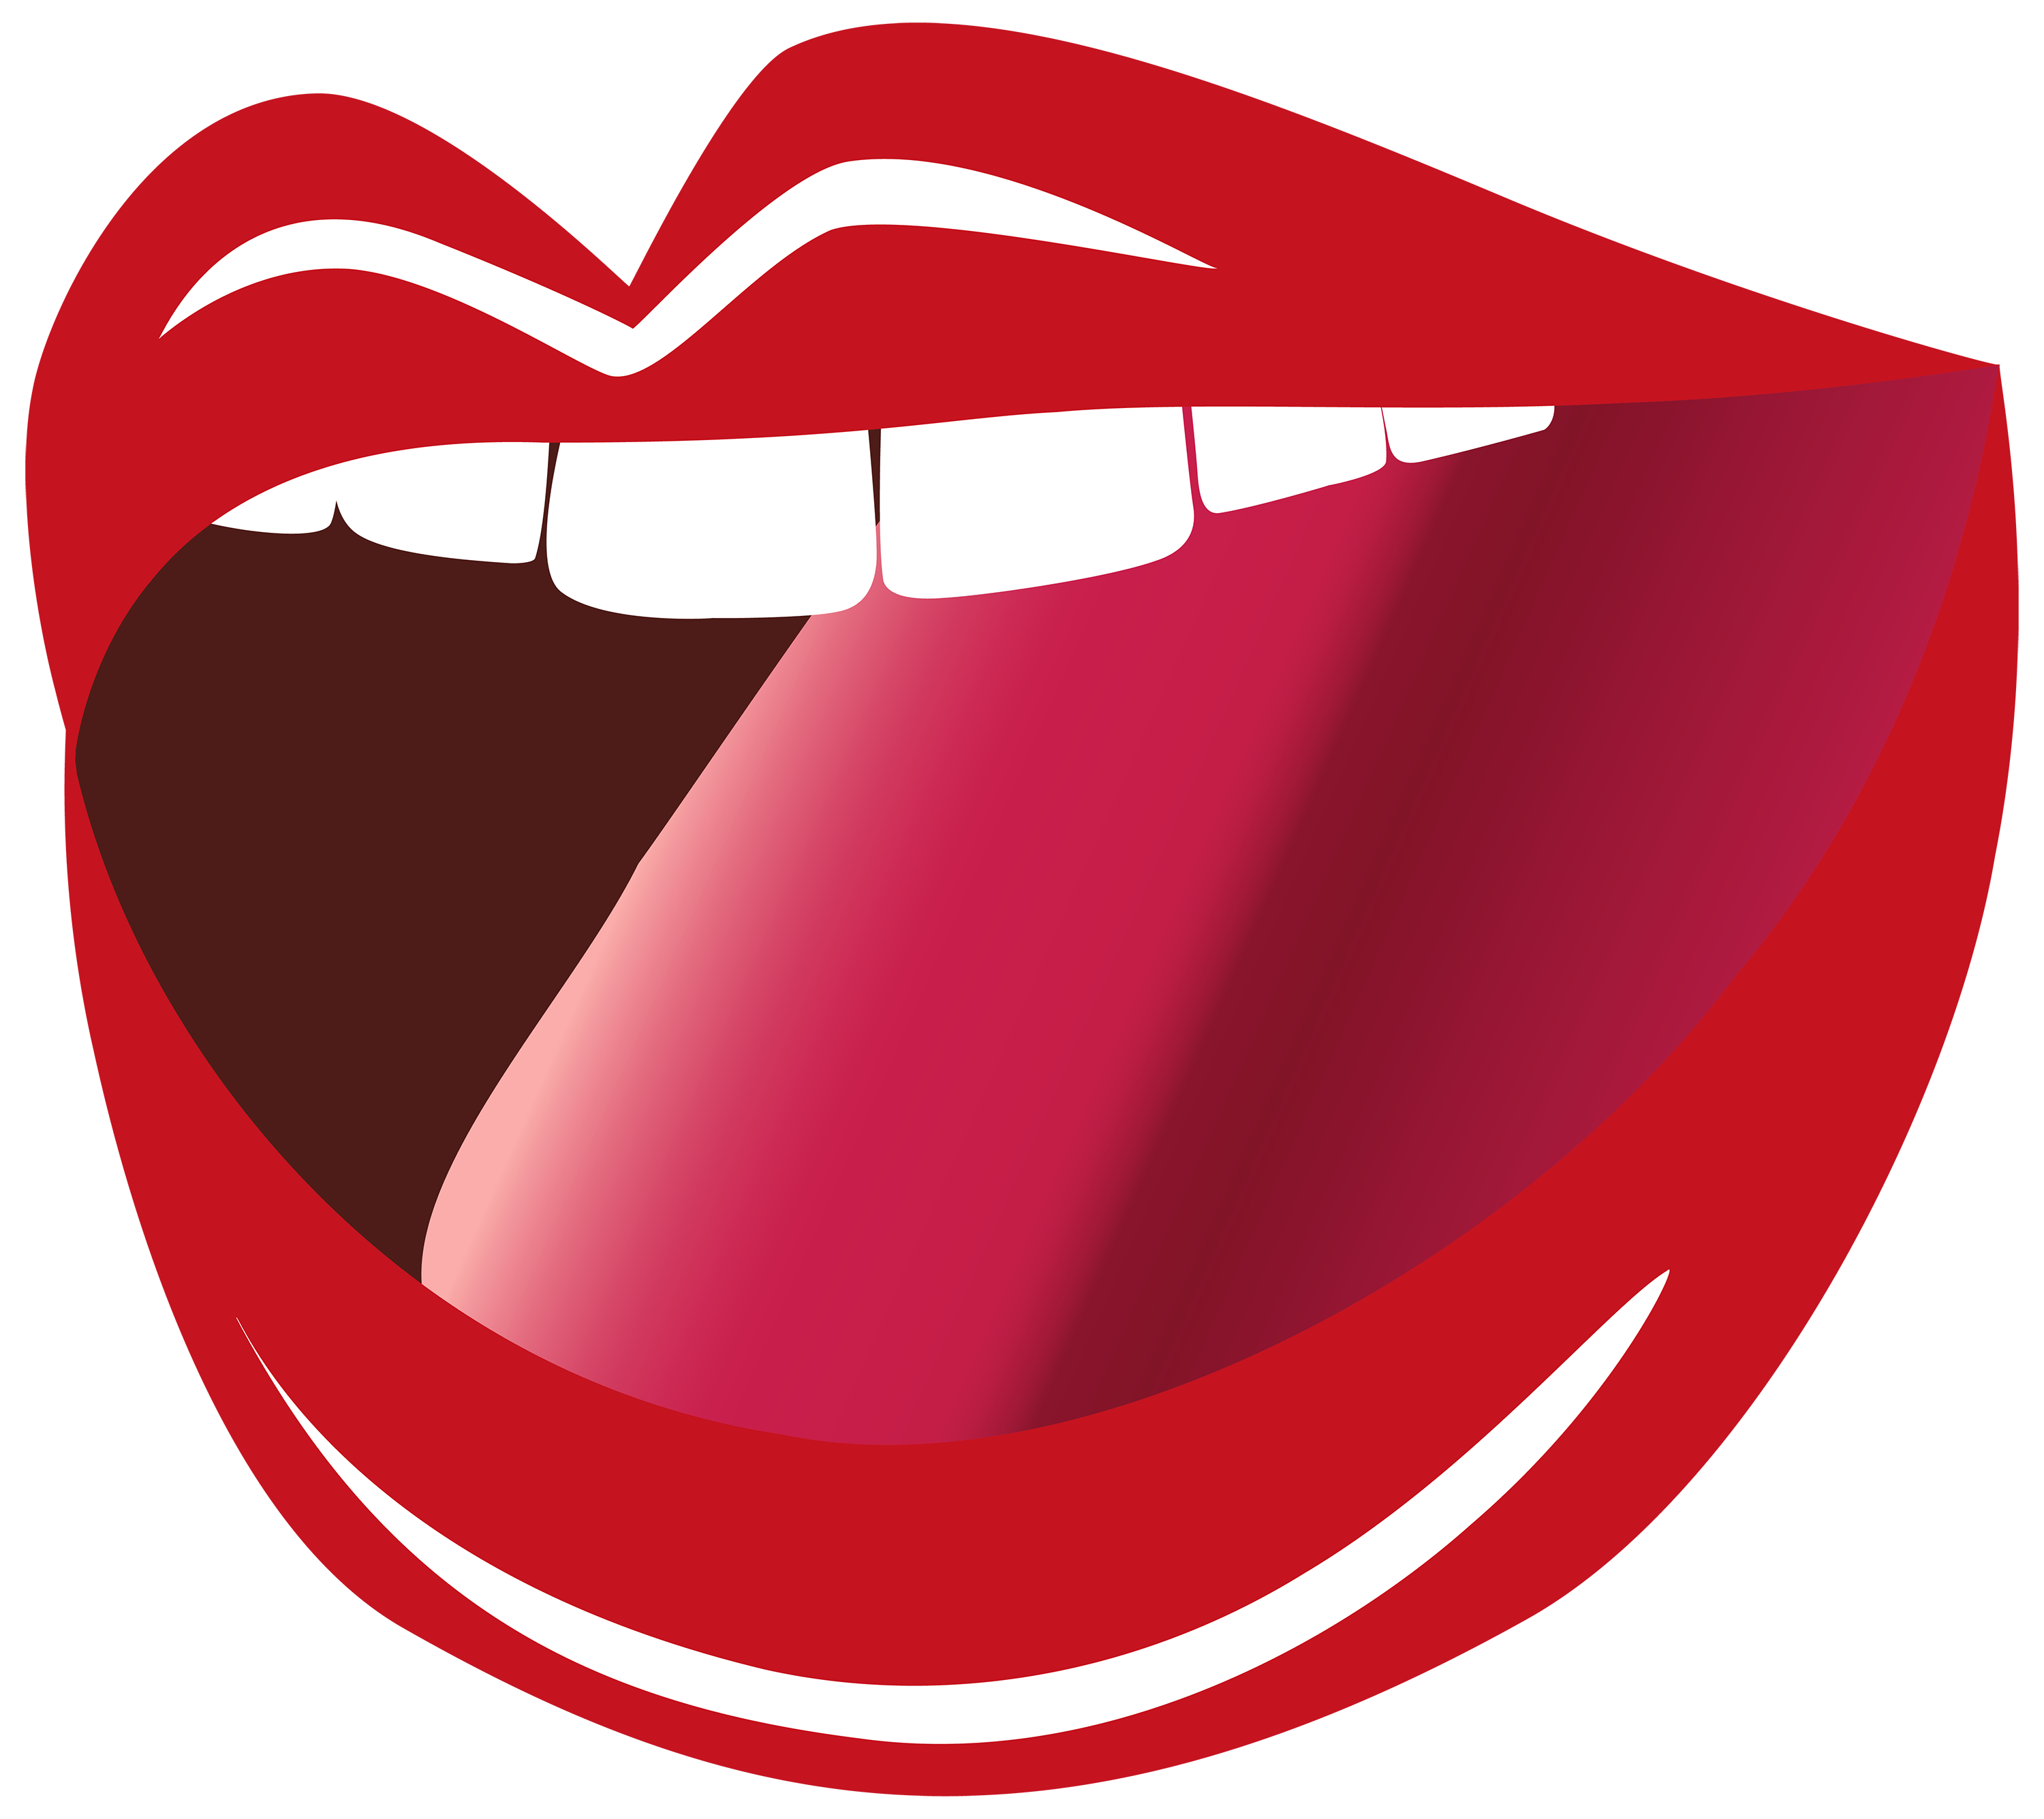 Mouth clipart clean mouth. Open png image best